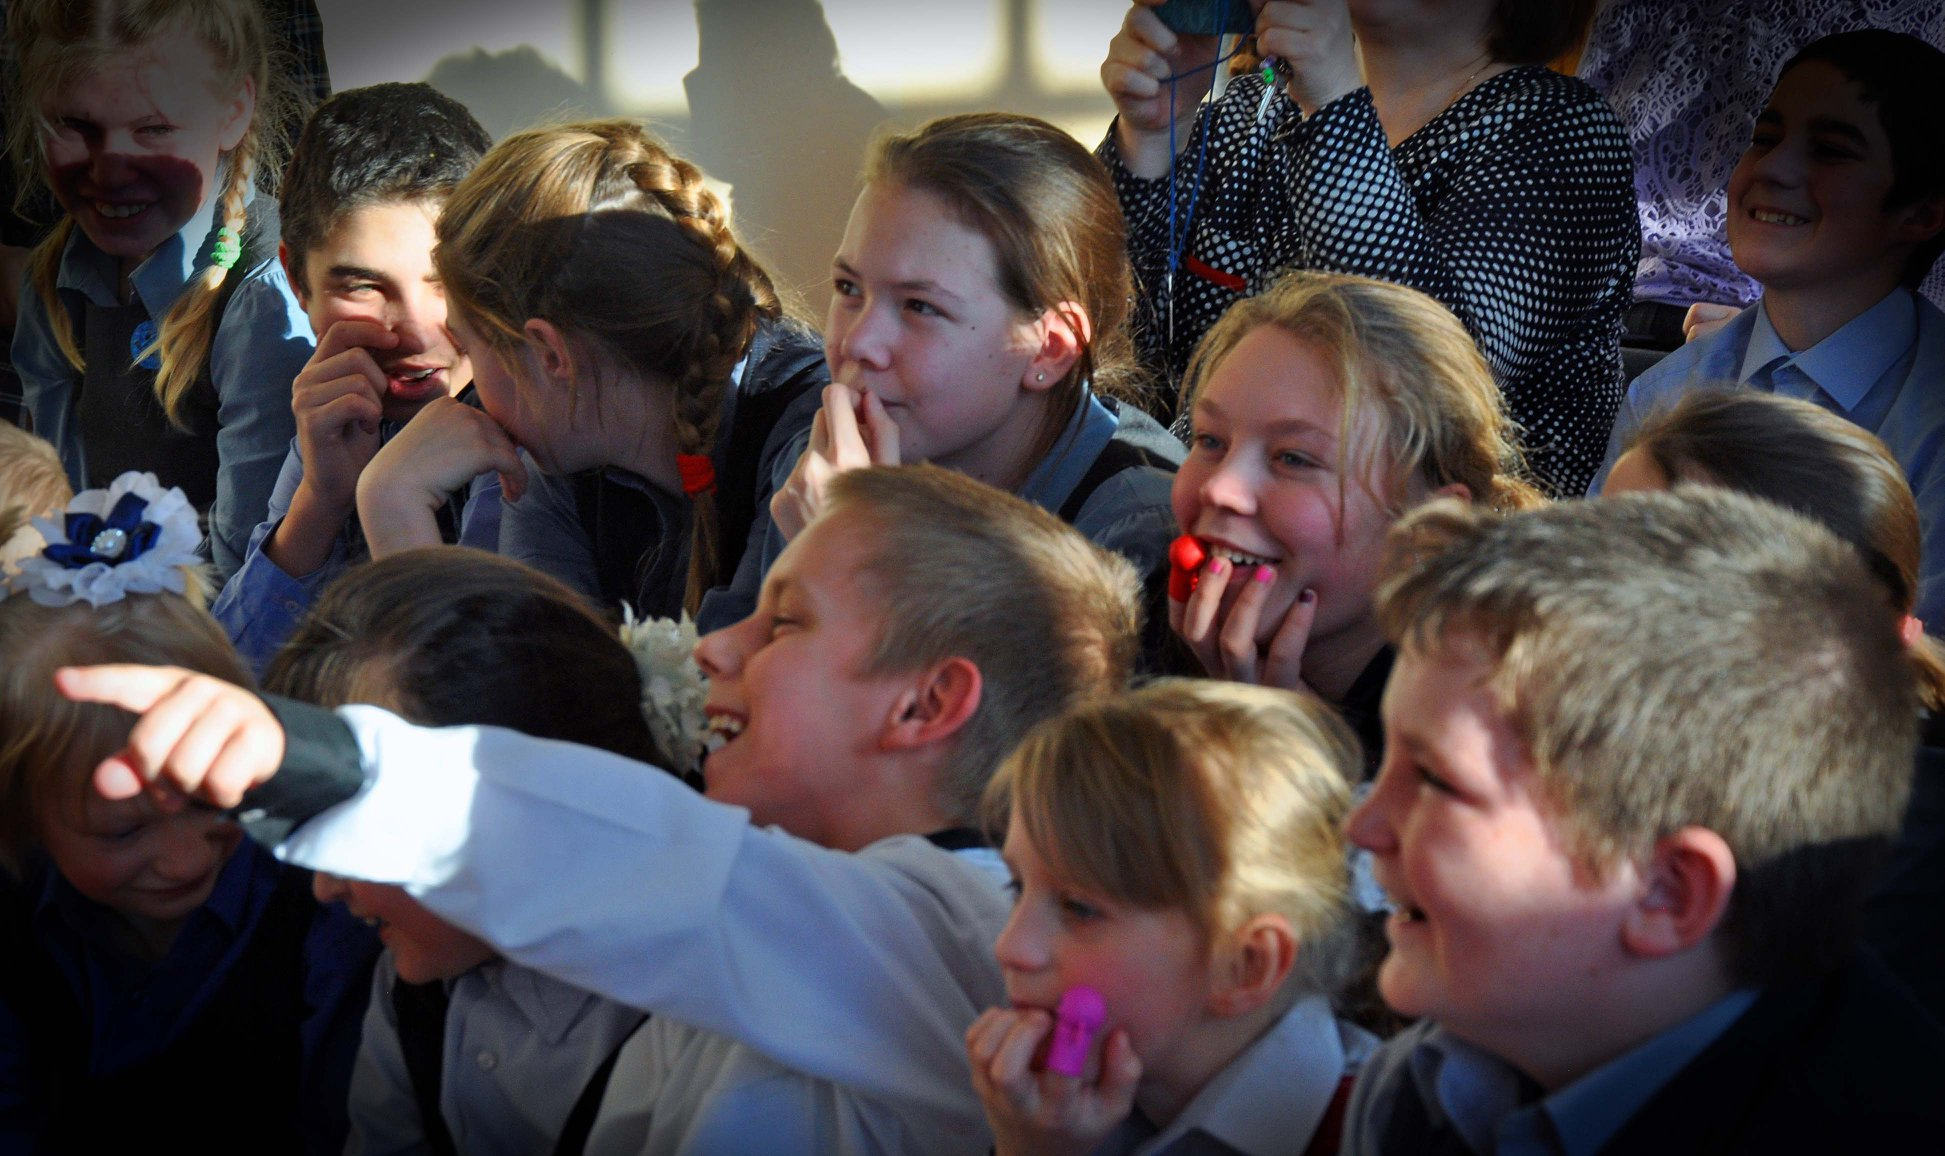 SOAR works with local churches to help Russian orphans